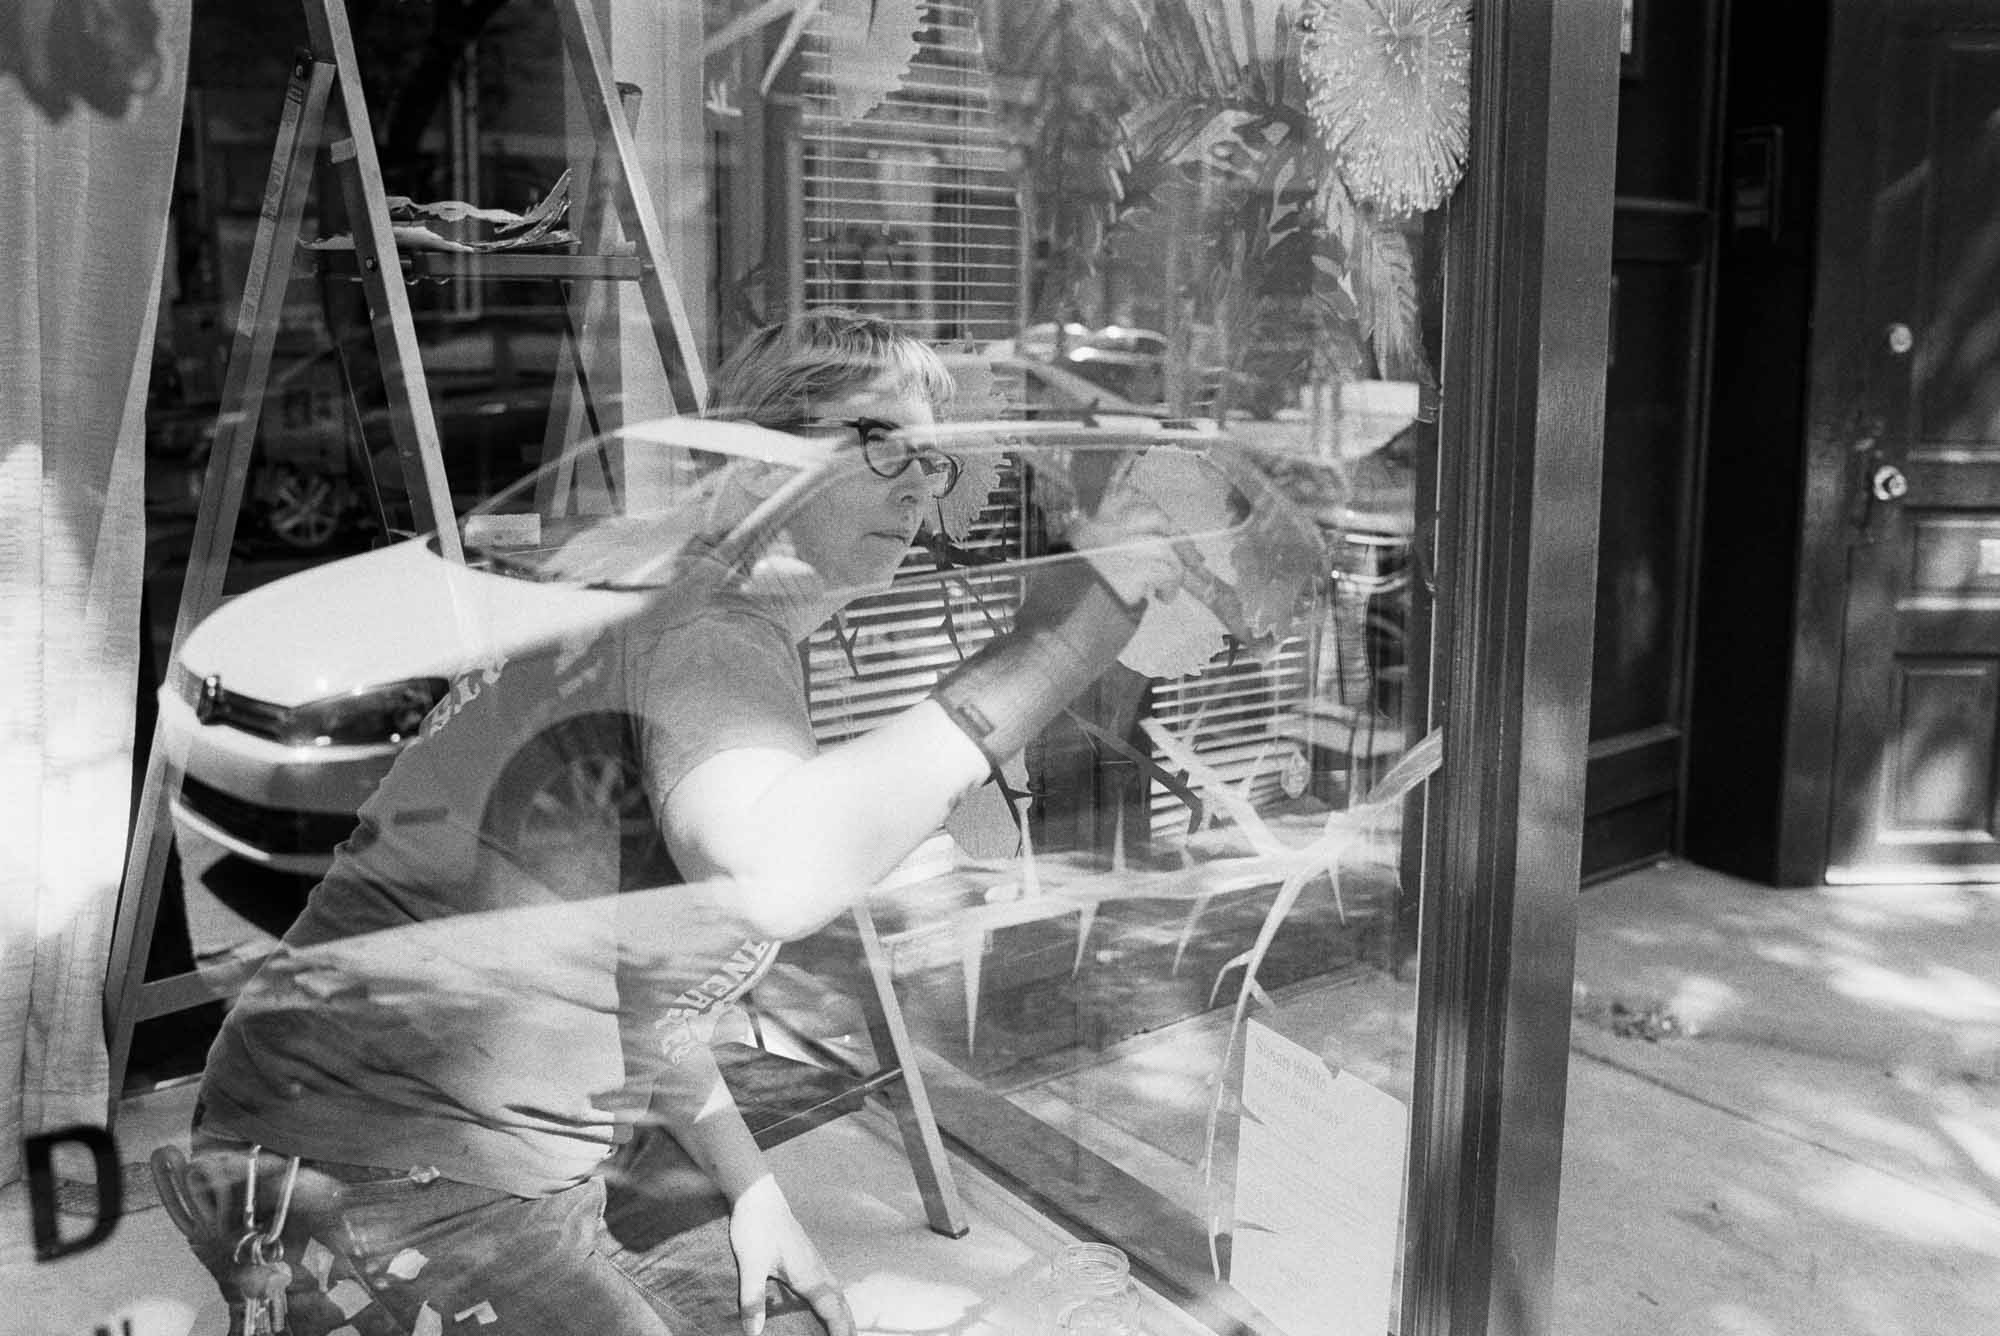 Installation at Old City Publishing, Nikon F2AS, 35mm f/1.4 AI, Eastman Double-X